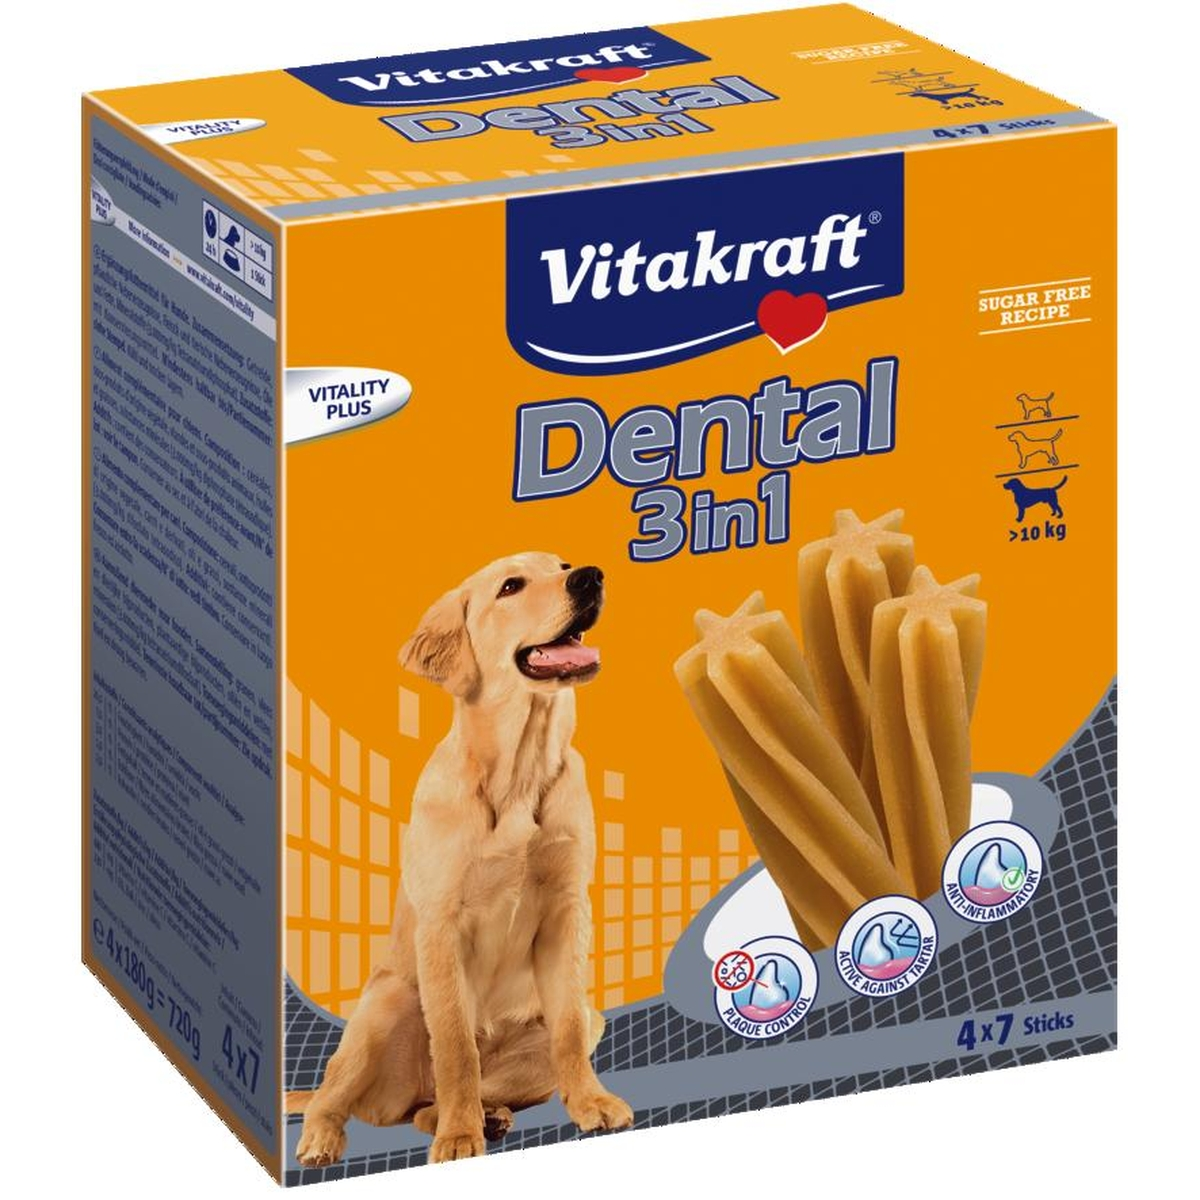 Multipack dental m 3 in 1 meerkleurig 180 gr